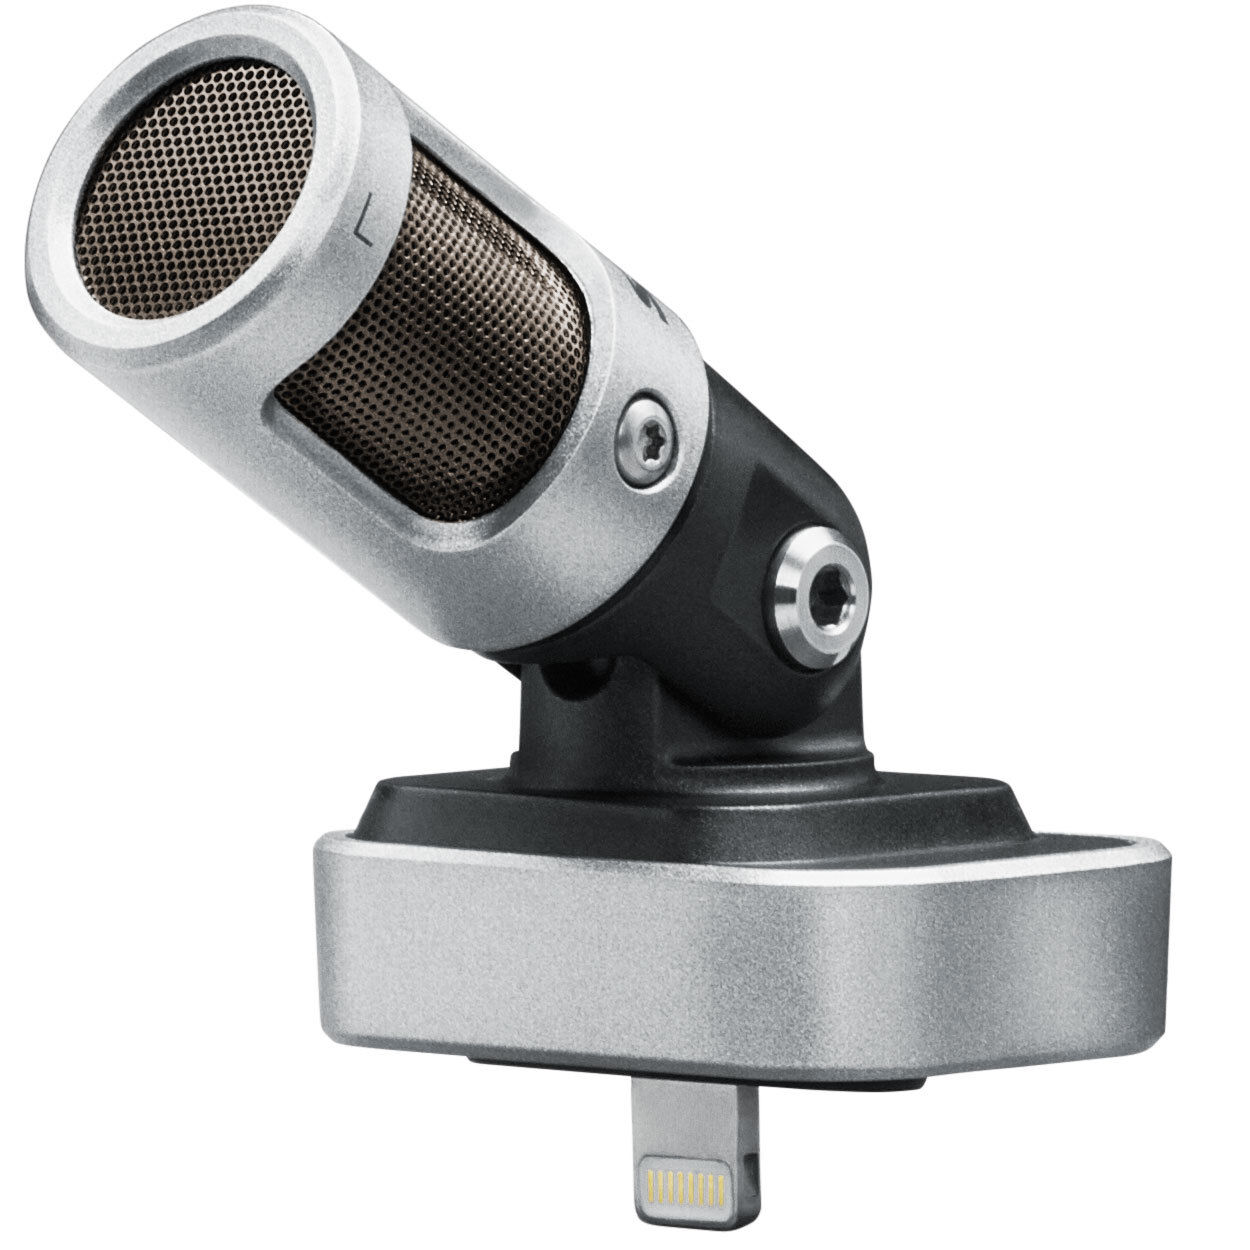 Shure MV88 iOS Digital Stereo Condenser Microphone with Lightning Connector